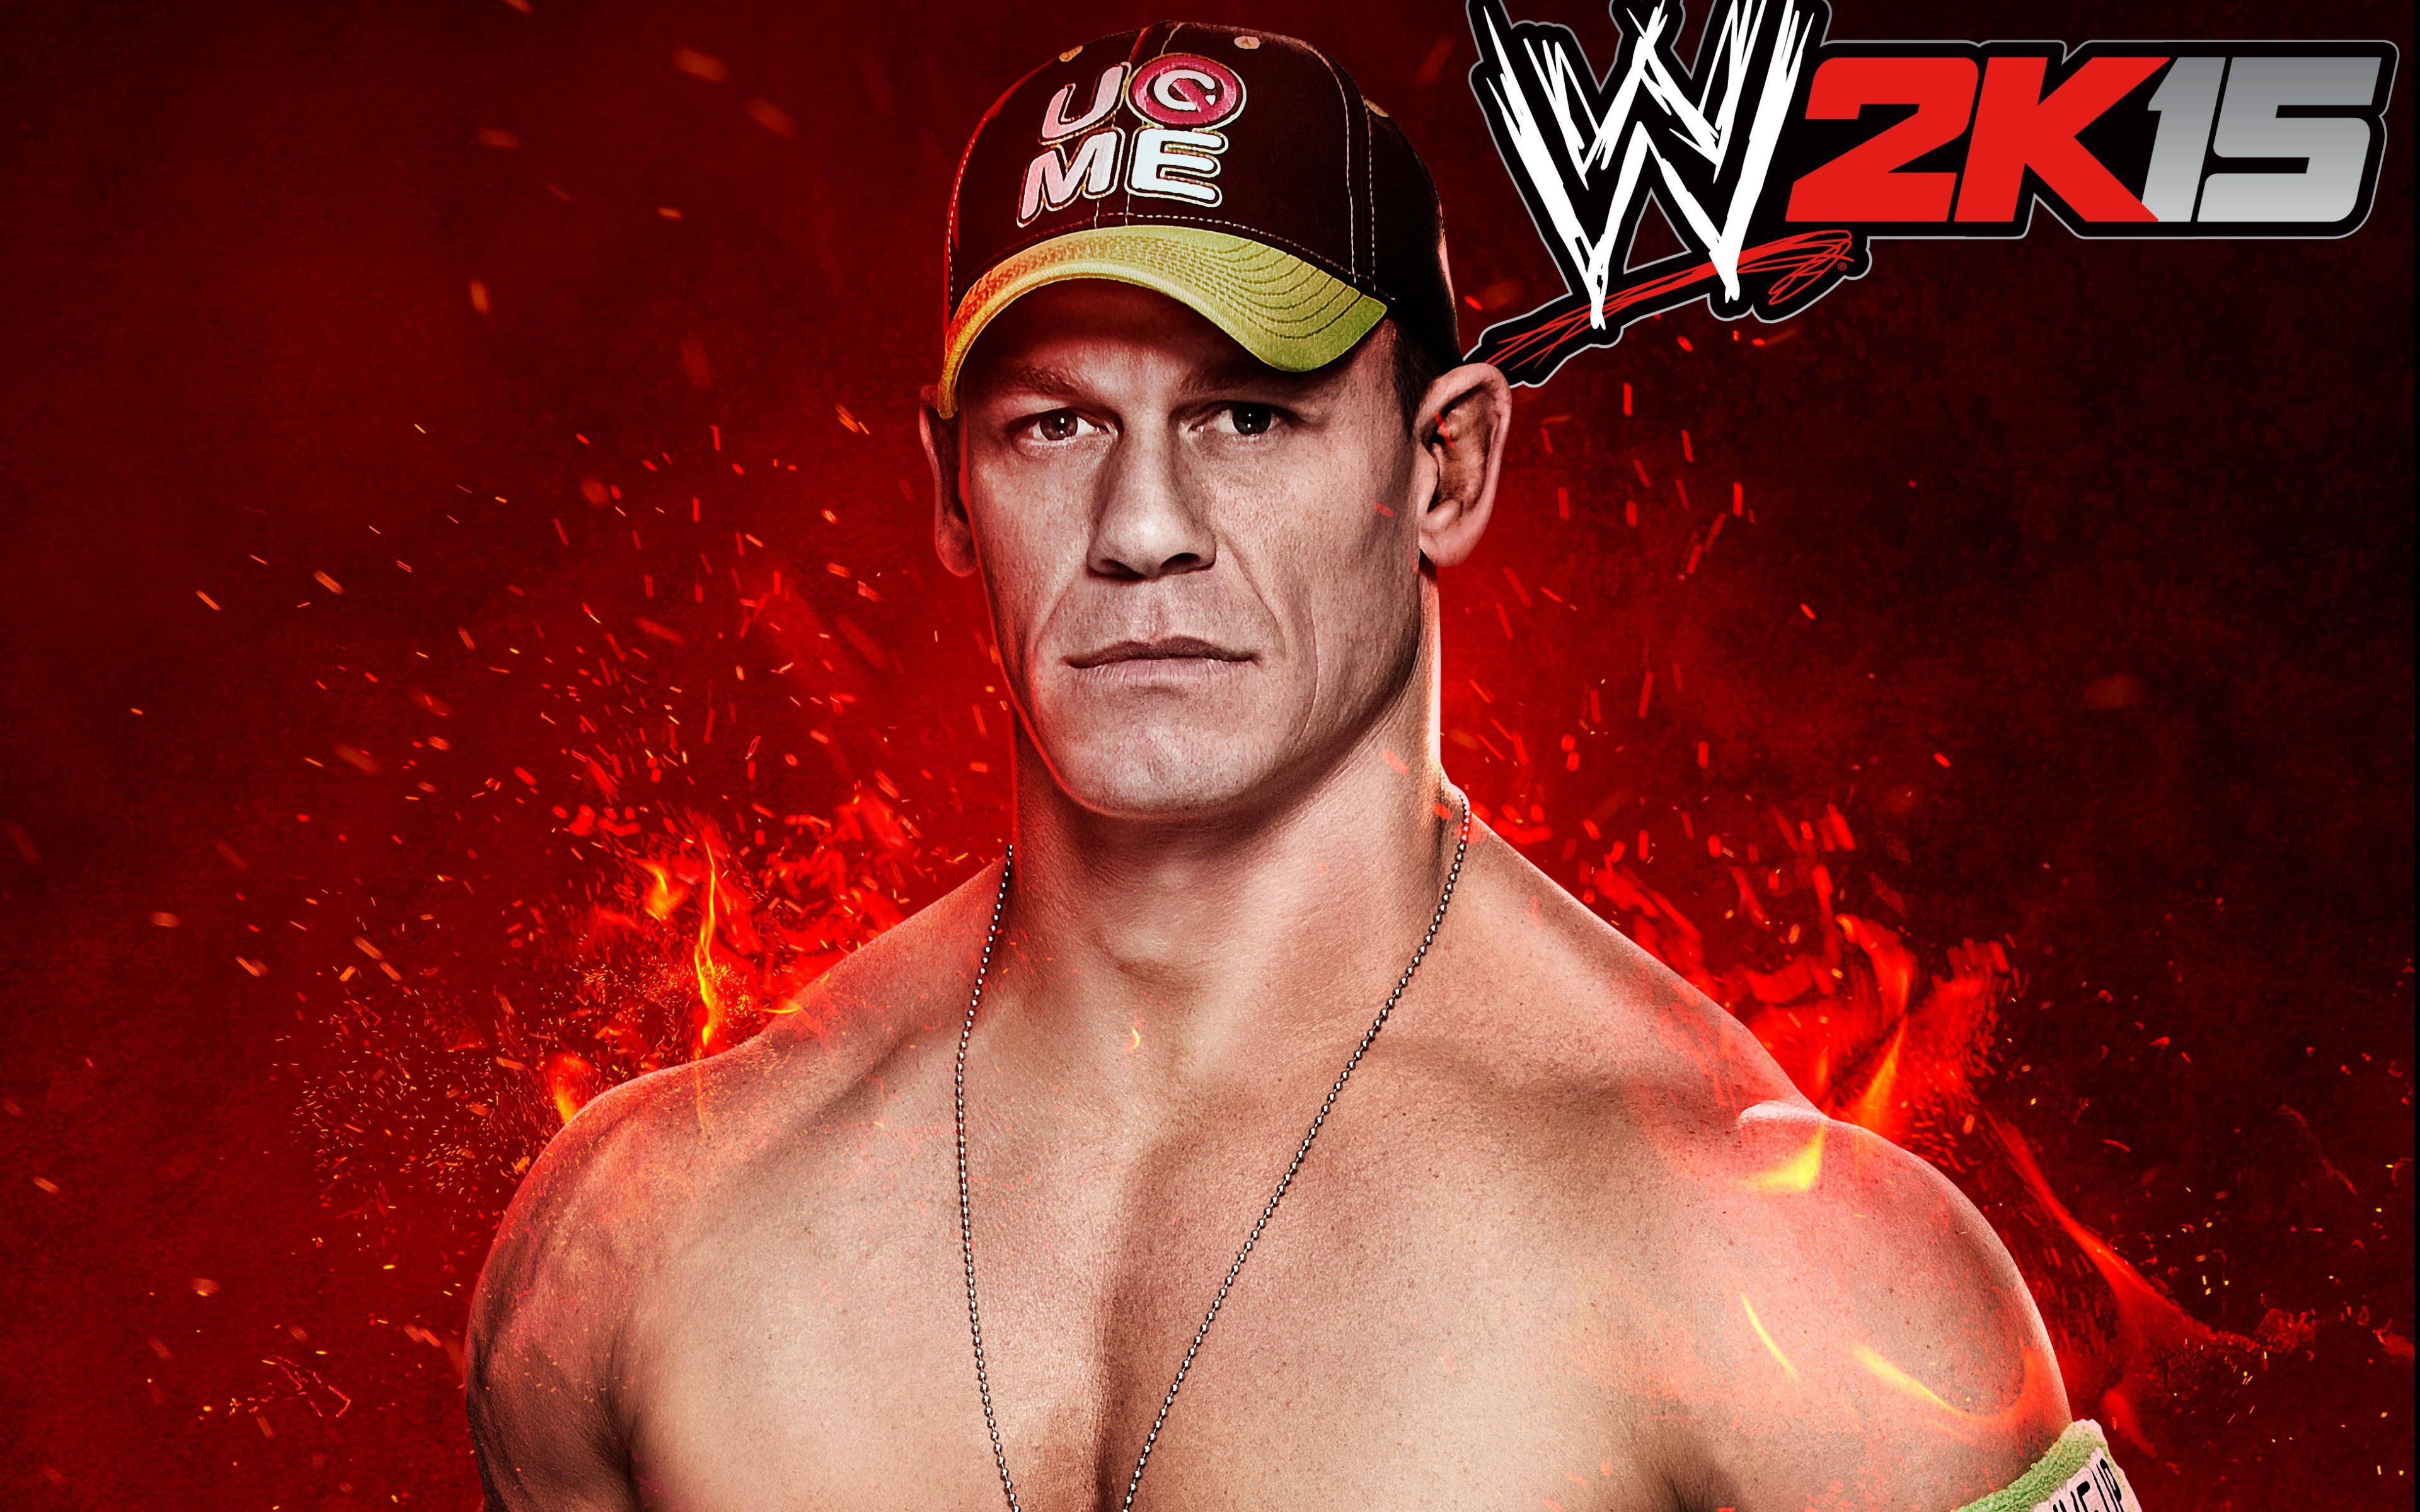 johncena hd wallpapers 2016 - wallpaper cave